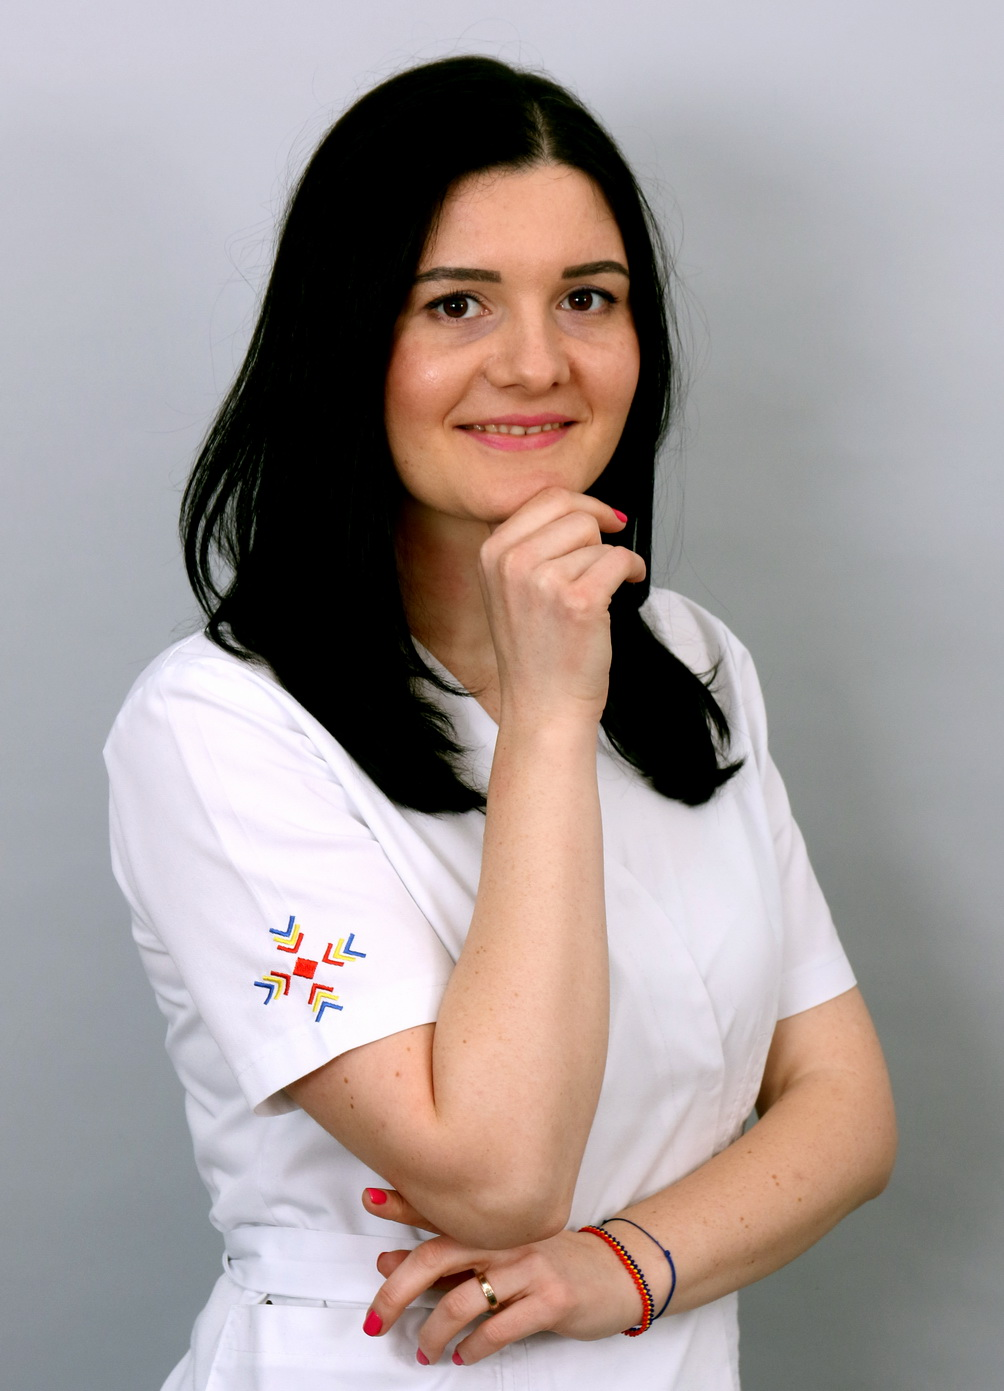 Dr. Anca Wagner